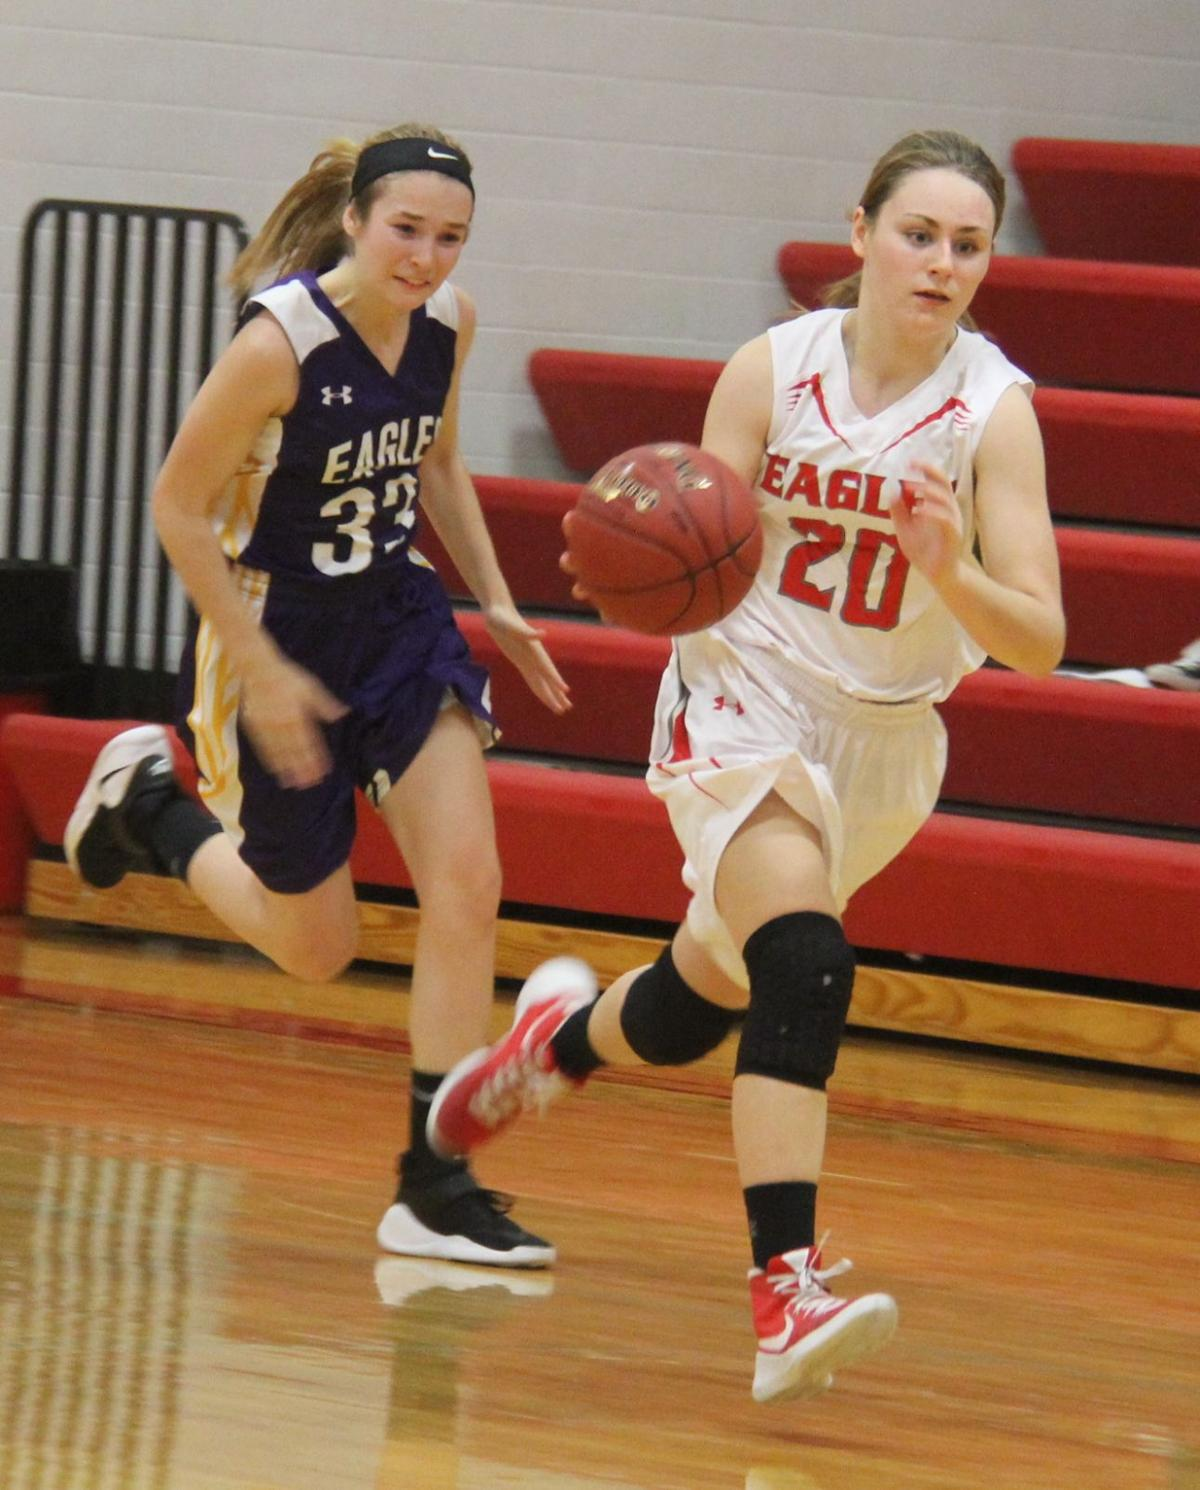 eagle grove girls 2017-2-8 the garner-hayfield-ventura girls split a pair of games last week, moving their top of iowa conference west division record to 8-11 the cardinals opened the game strong and never looked back, as they got an easy win against eagle grove (0-12, 1-15), on tuesday, jan 31 ghv held the eagles.